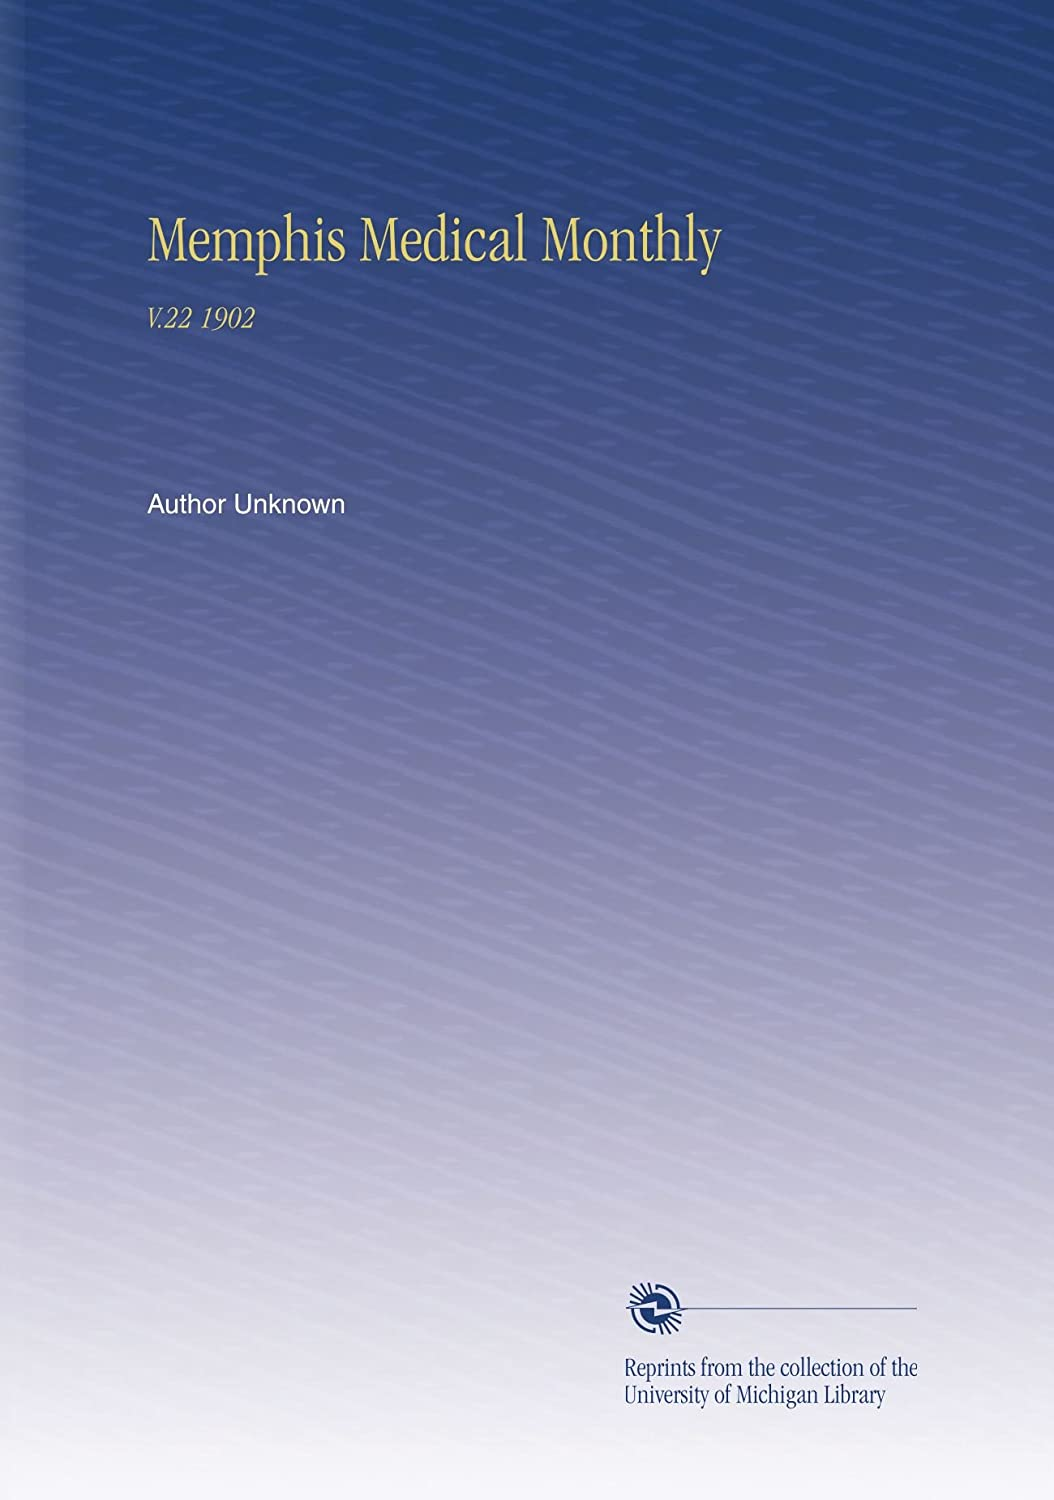 Memphis Medical Monthly: V.22 1902 Author Unknown